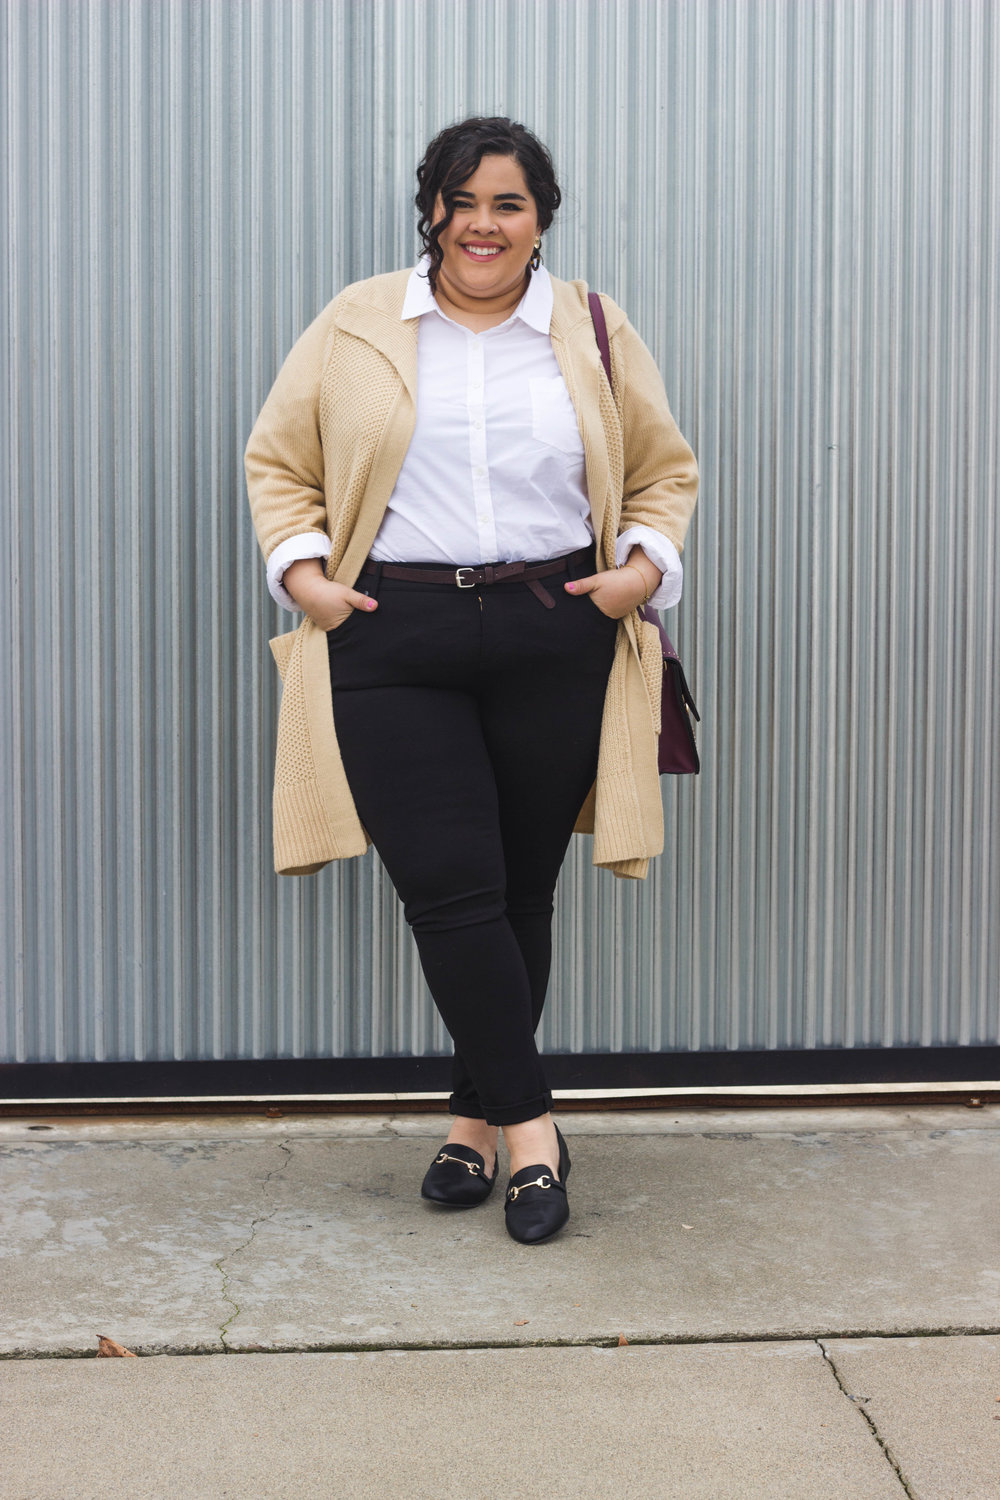 TorridTop1Way (88 of 119).jpg